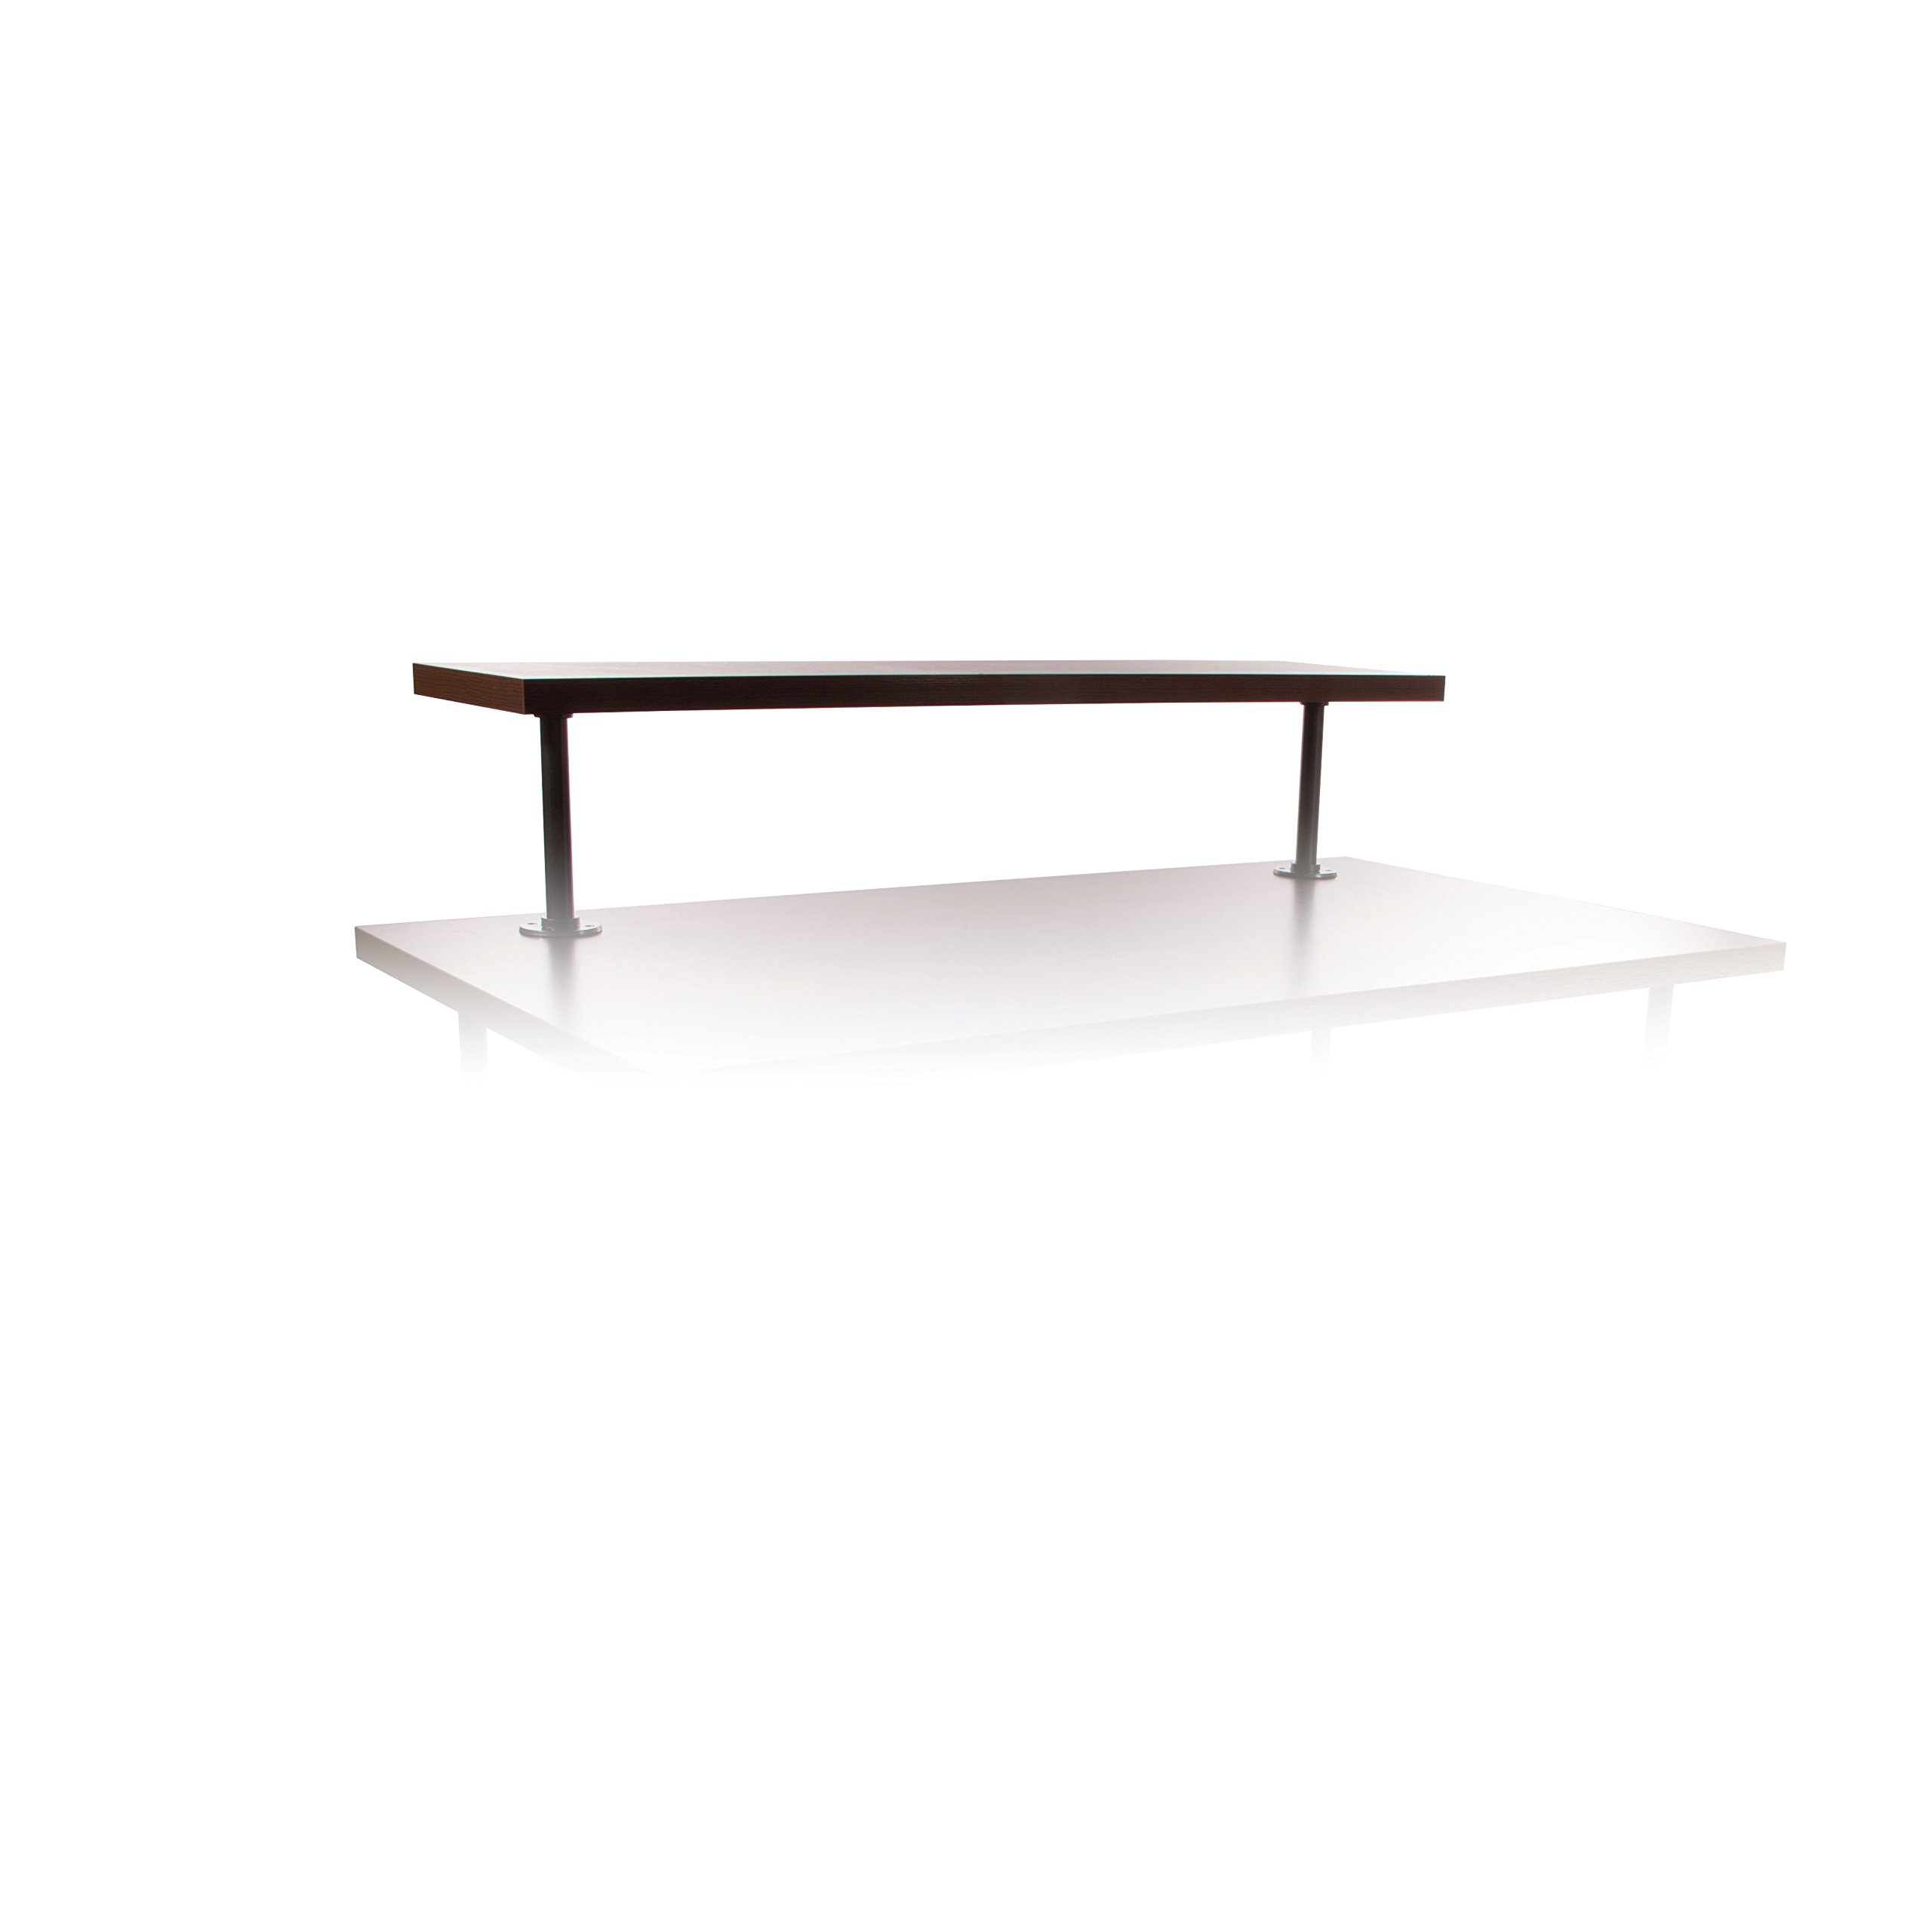 Econoco Pipeline Nesting Topper, Dark Brown Wood Grained Melamine (Large Table Sold Separately)